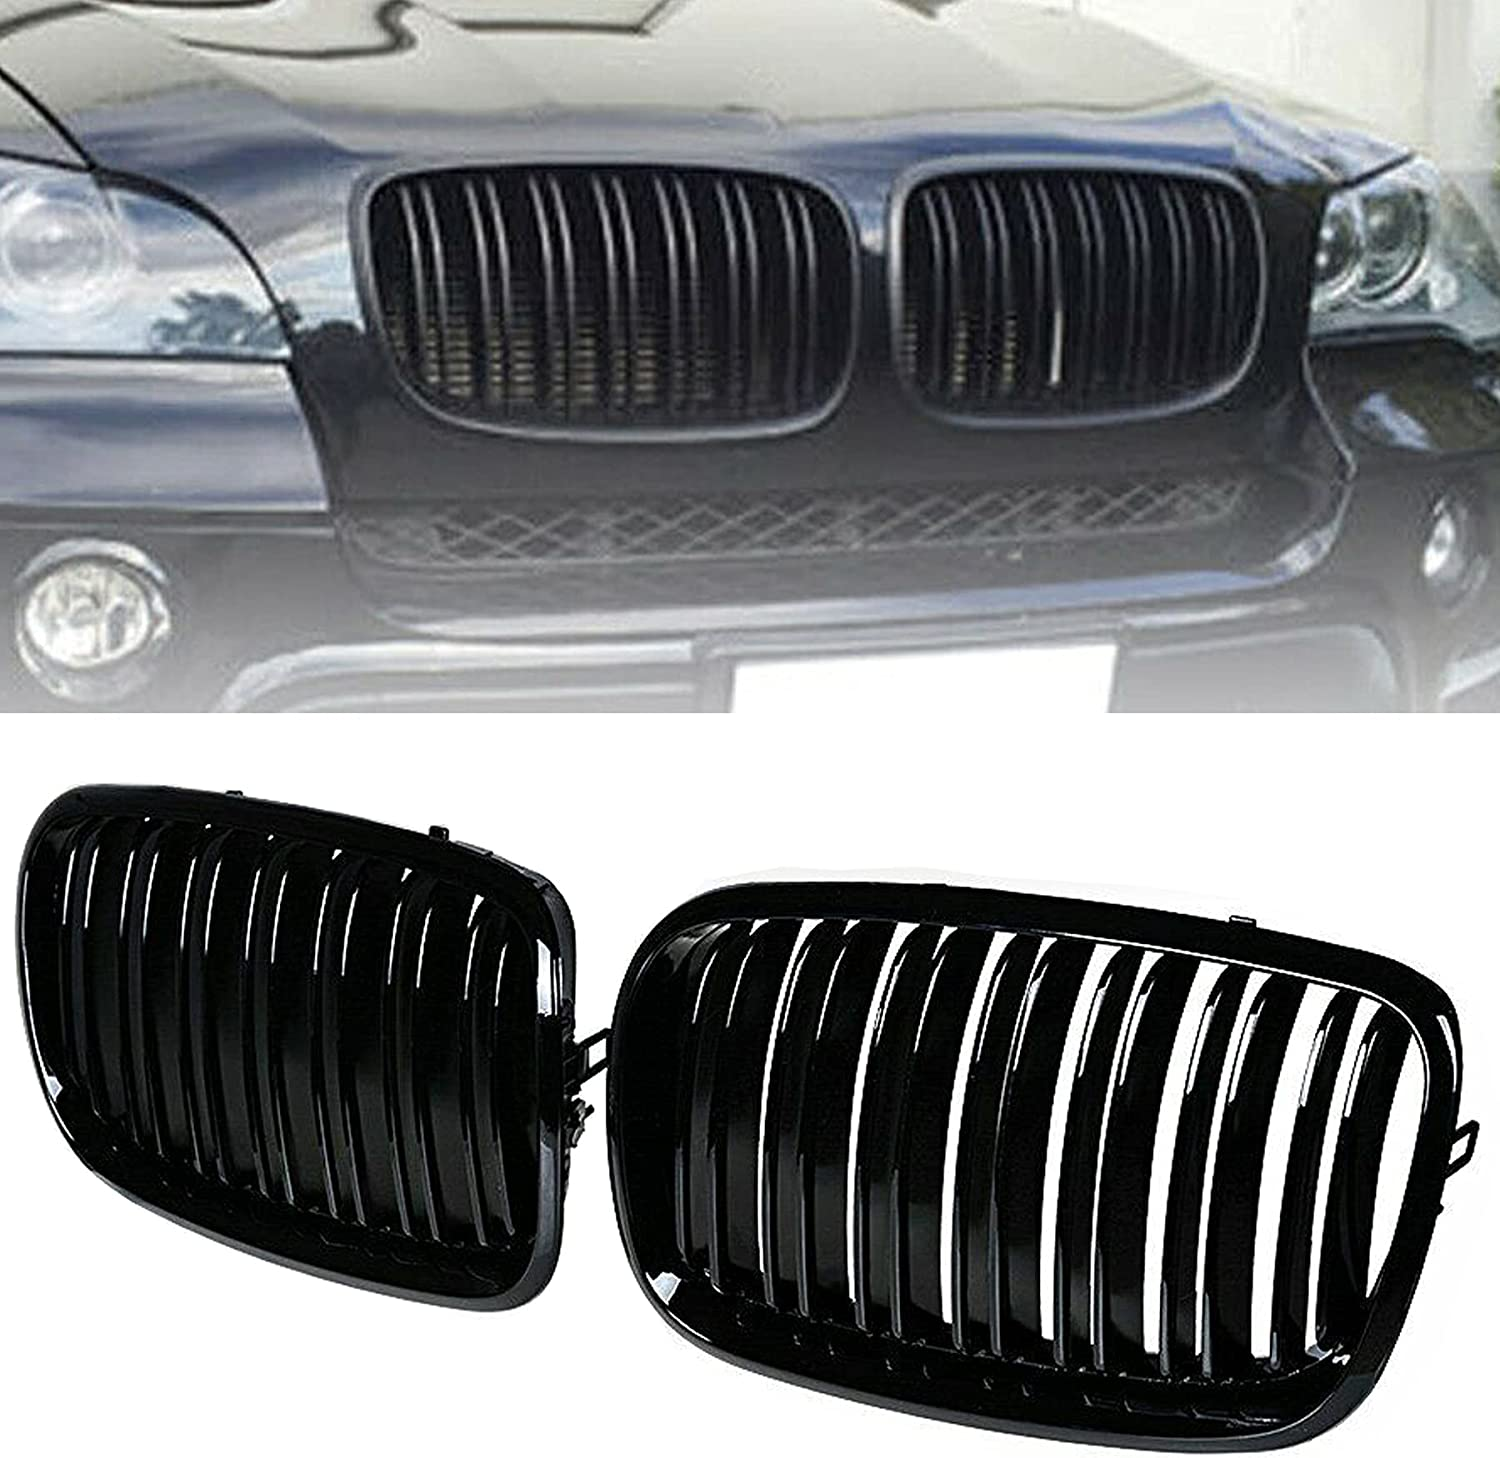 BILLDIO Front Super beauty product restock quality top Bumper Kidney Grille Grill Glossy Clearance SALE! Limited time! Black Compatible